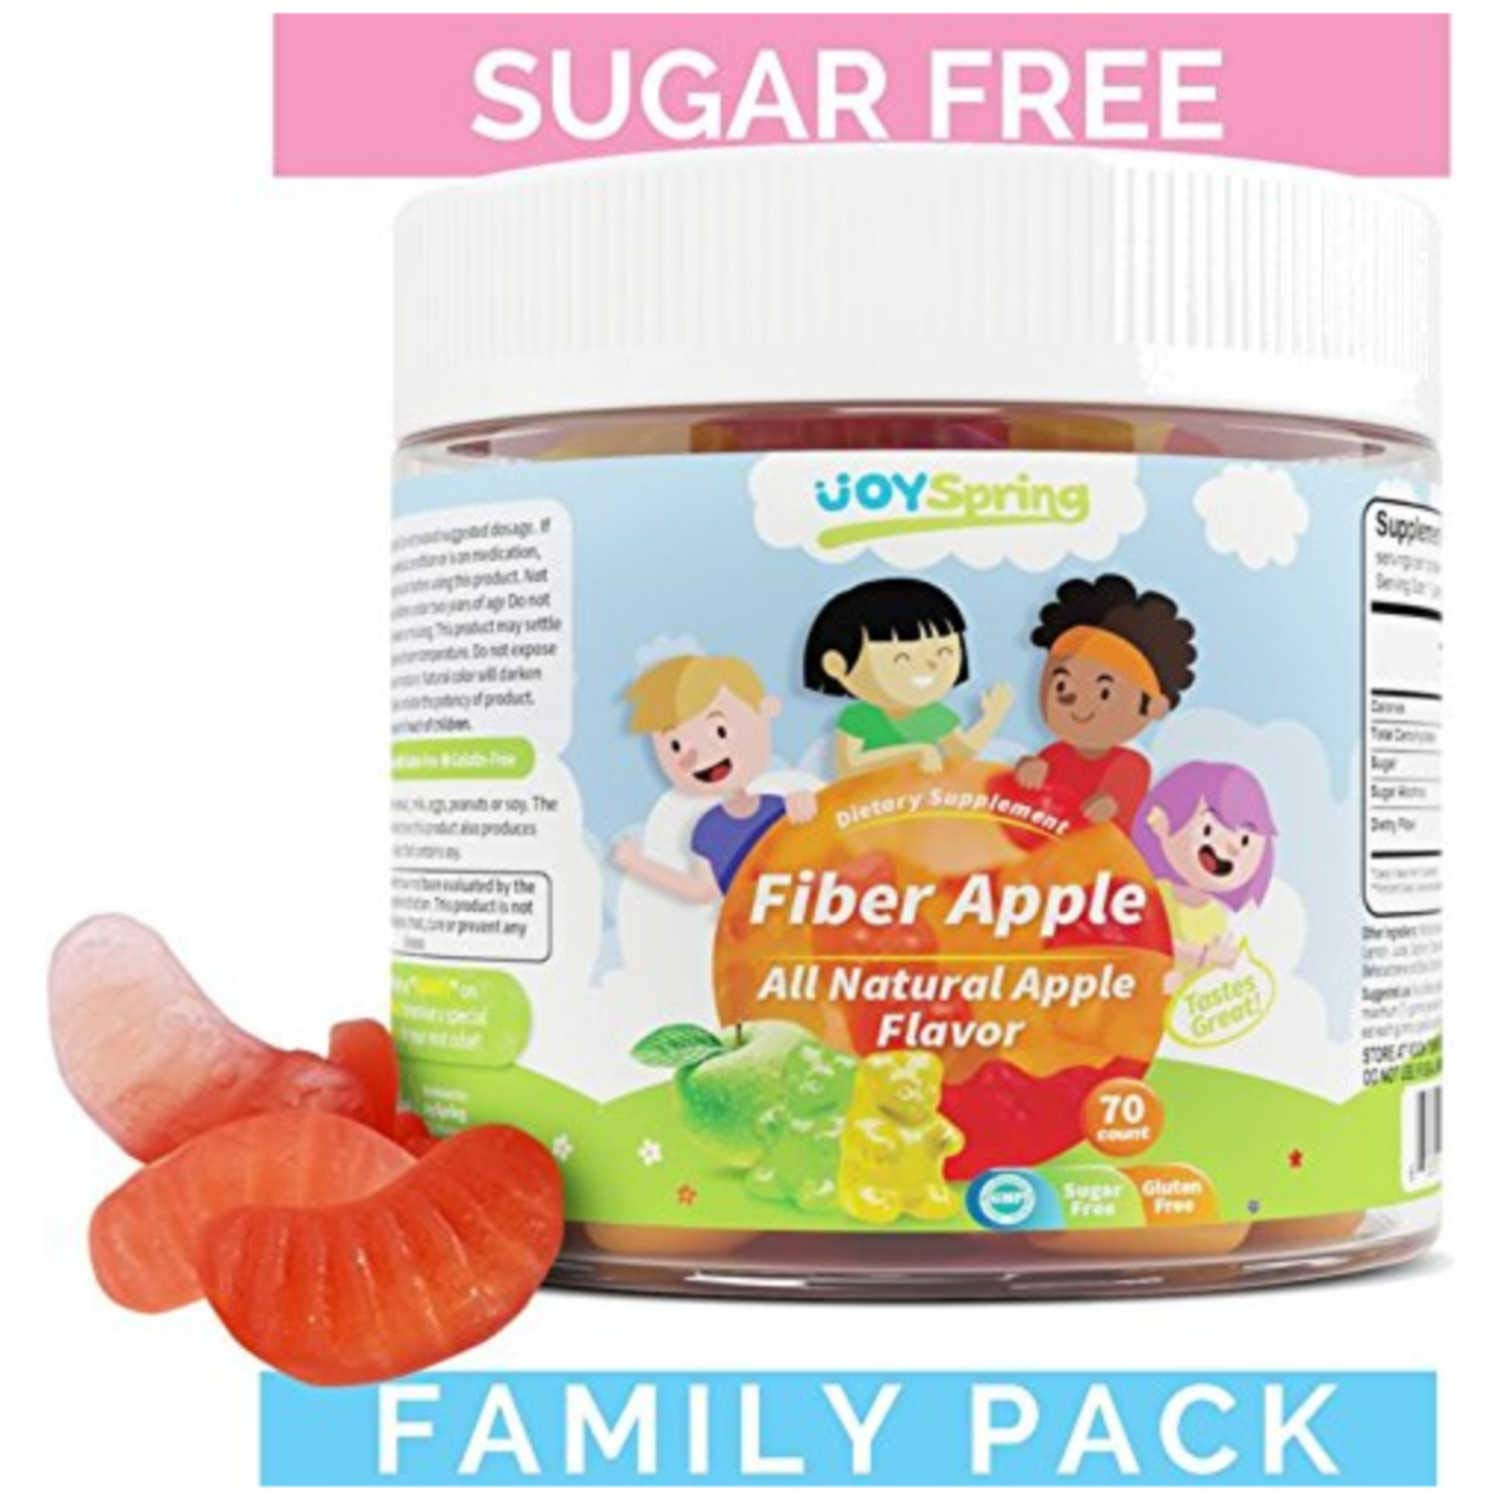 Fiber Gummies for Kids - Fruity Sugar Free Kids Fiber Gummy - Gluten Free Stool Softener for Toddlers - Family Pack